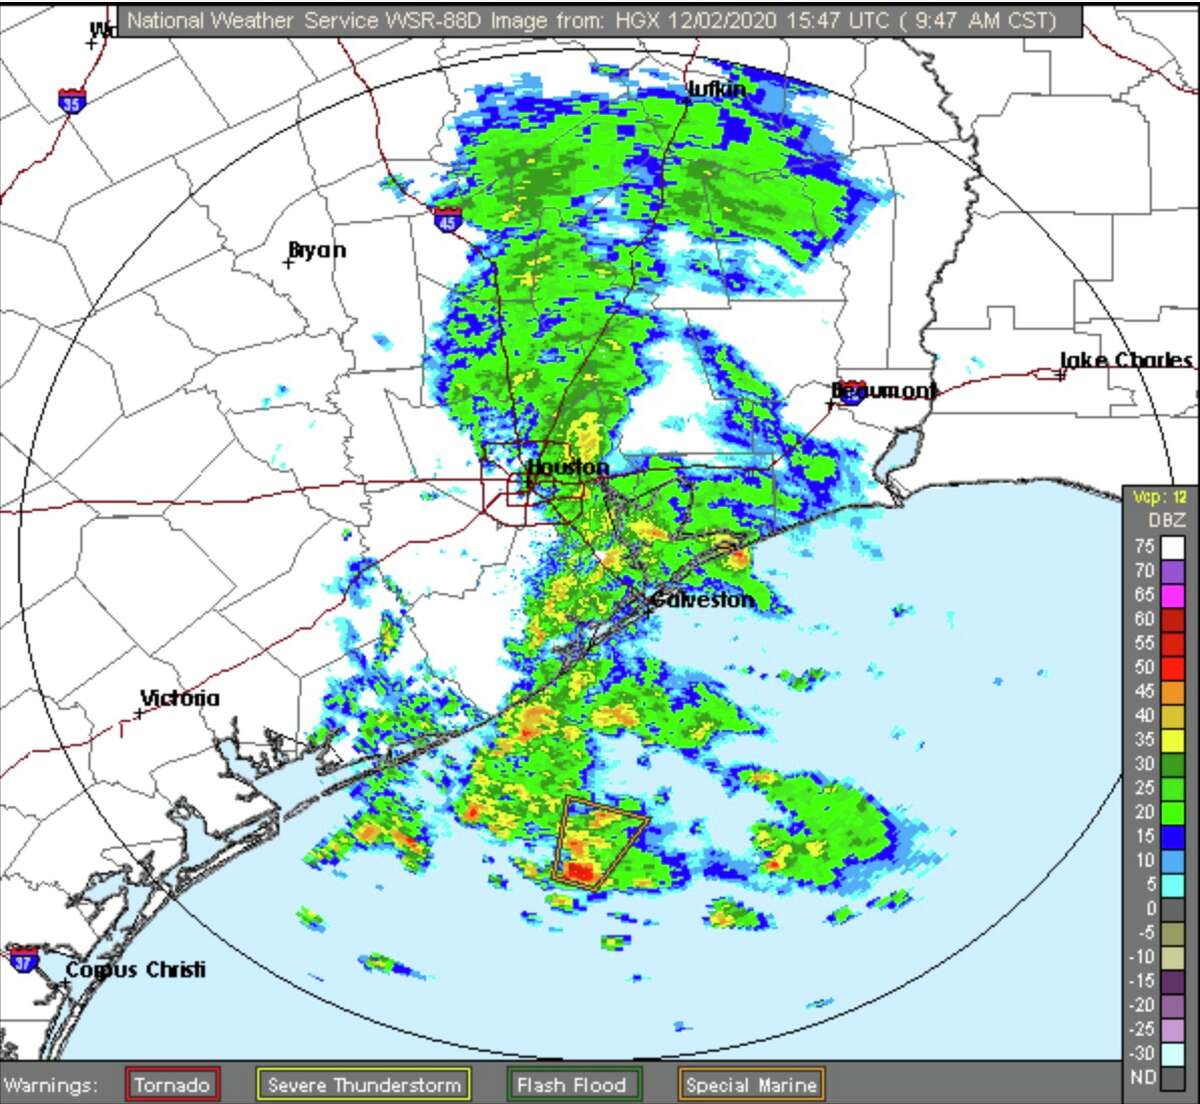 Rain is the main factor in Wednesday's weather forecast for Houston.